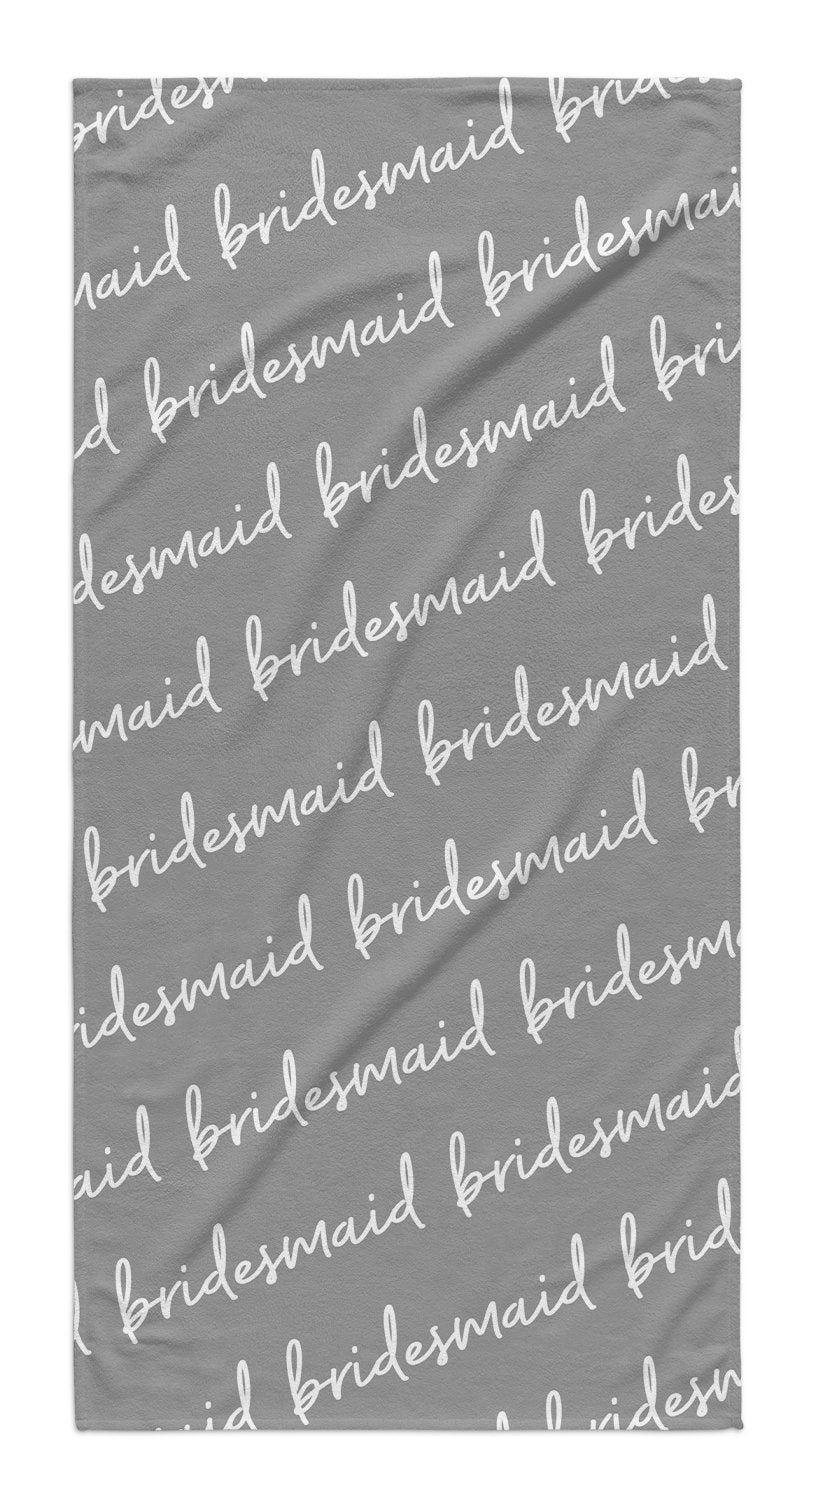 BRIDESMAID CURSIVE TOWEL